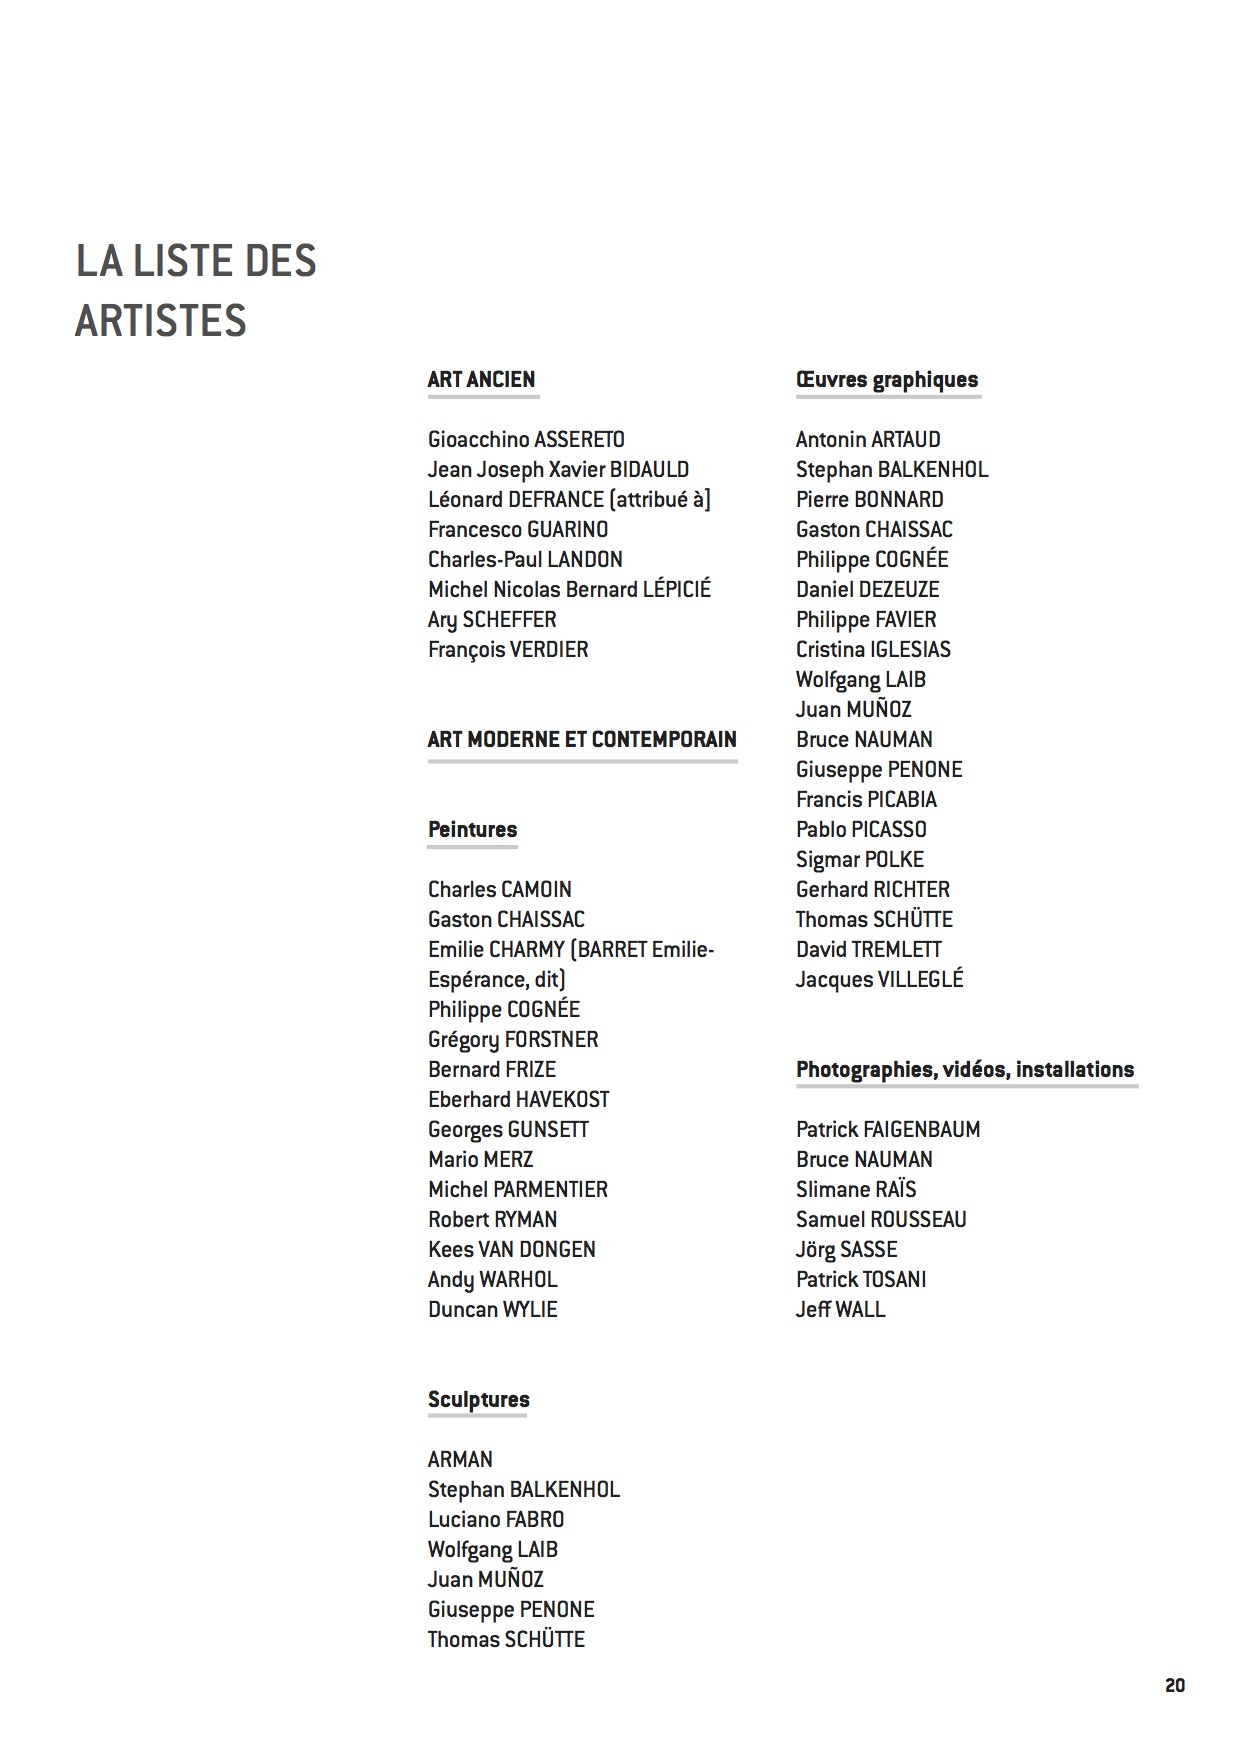 From Picasso to Warhol _ Museum of Grenoble.LIST OF ARTISTS pg 19 copy.jpg